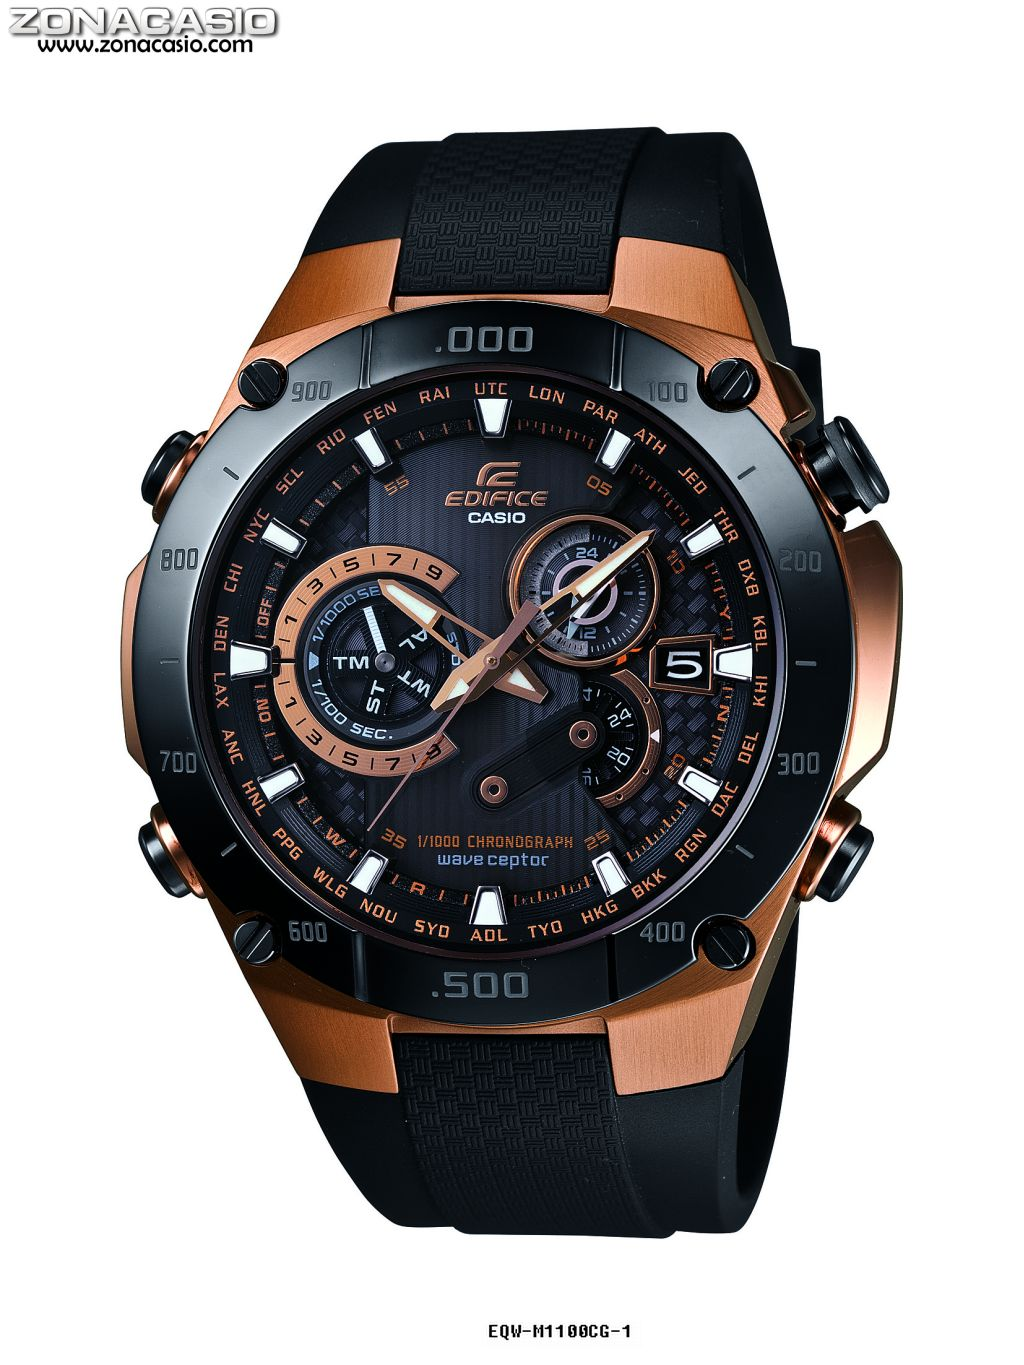 This is a photo of Agile Casio Edifice Gold Label Efx 510p